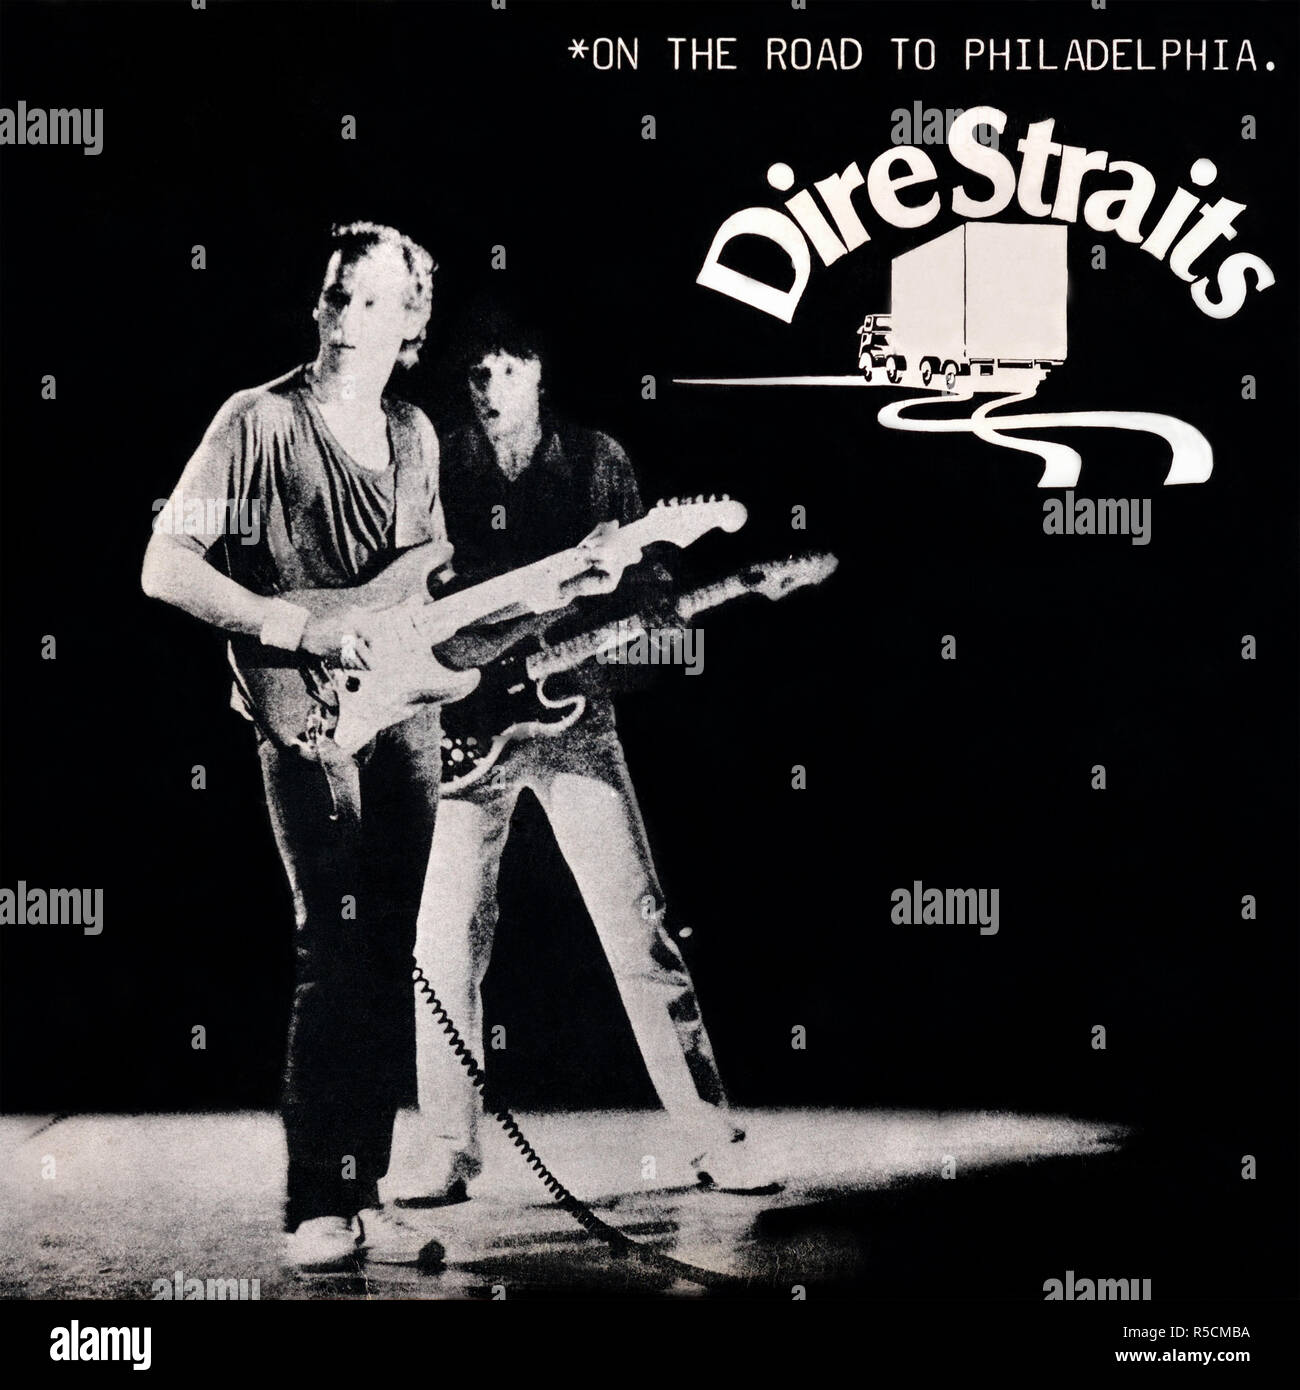 Dire Straits original vinyl album cover - On The Road To